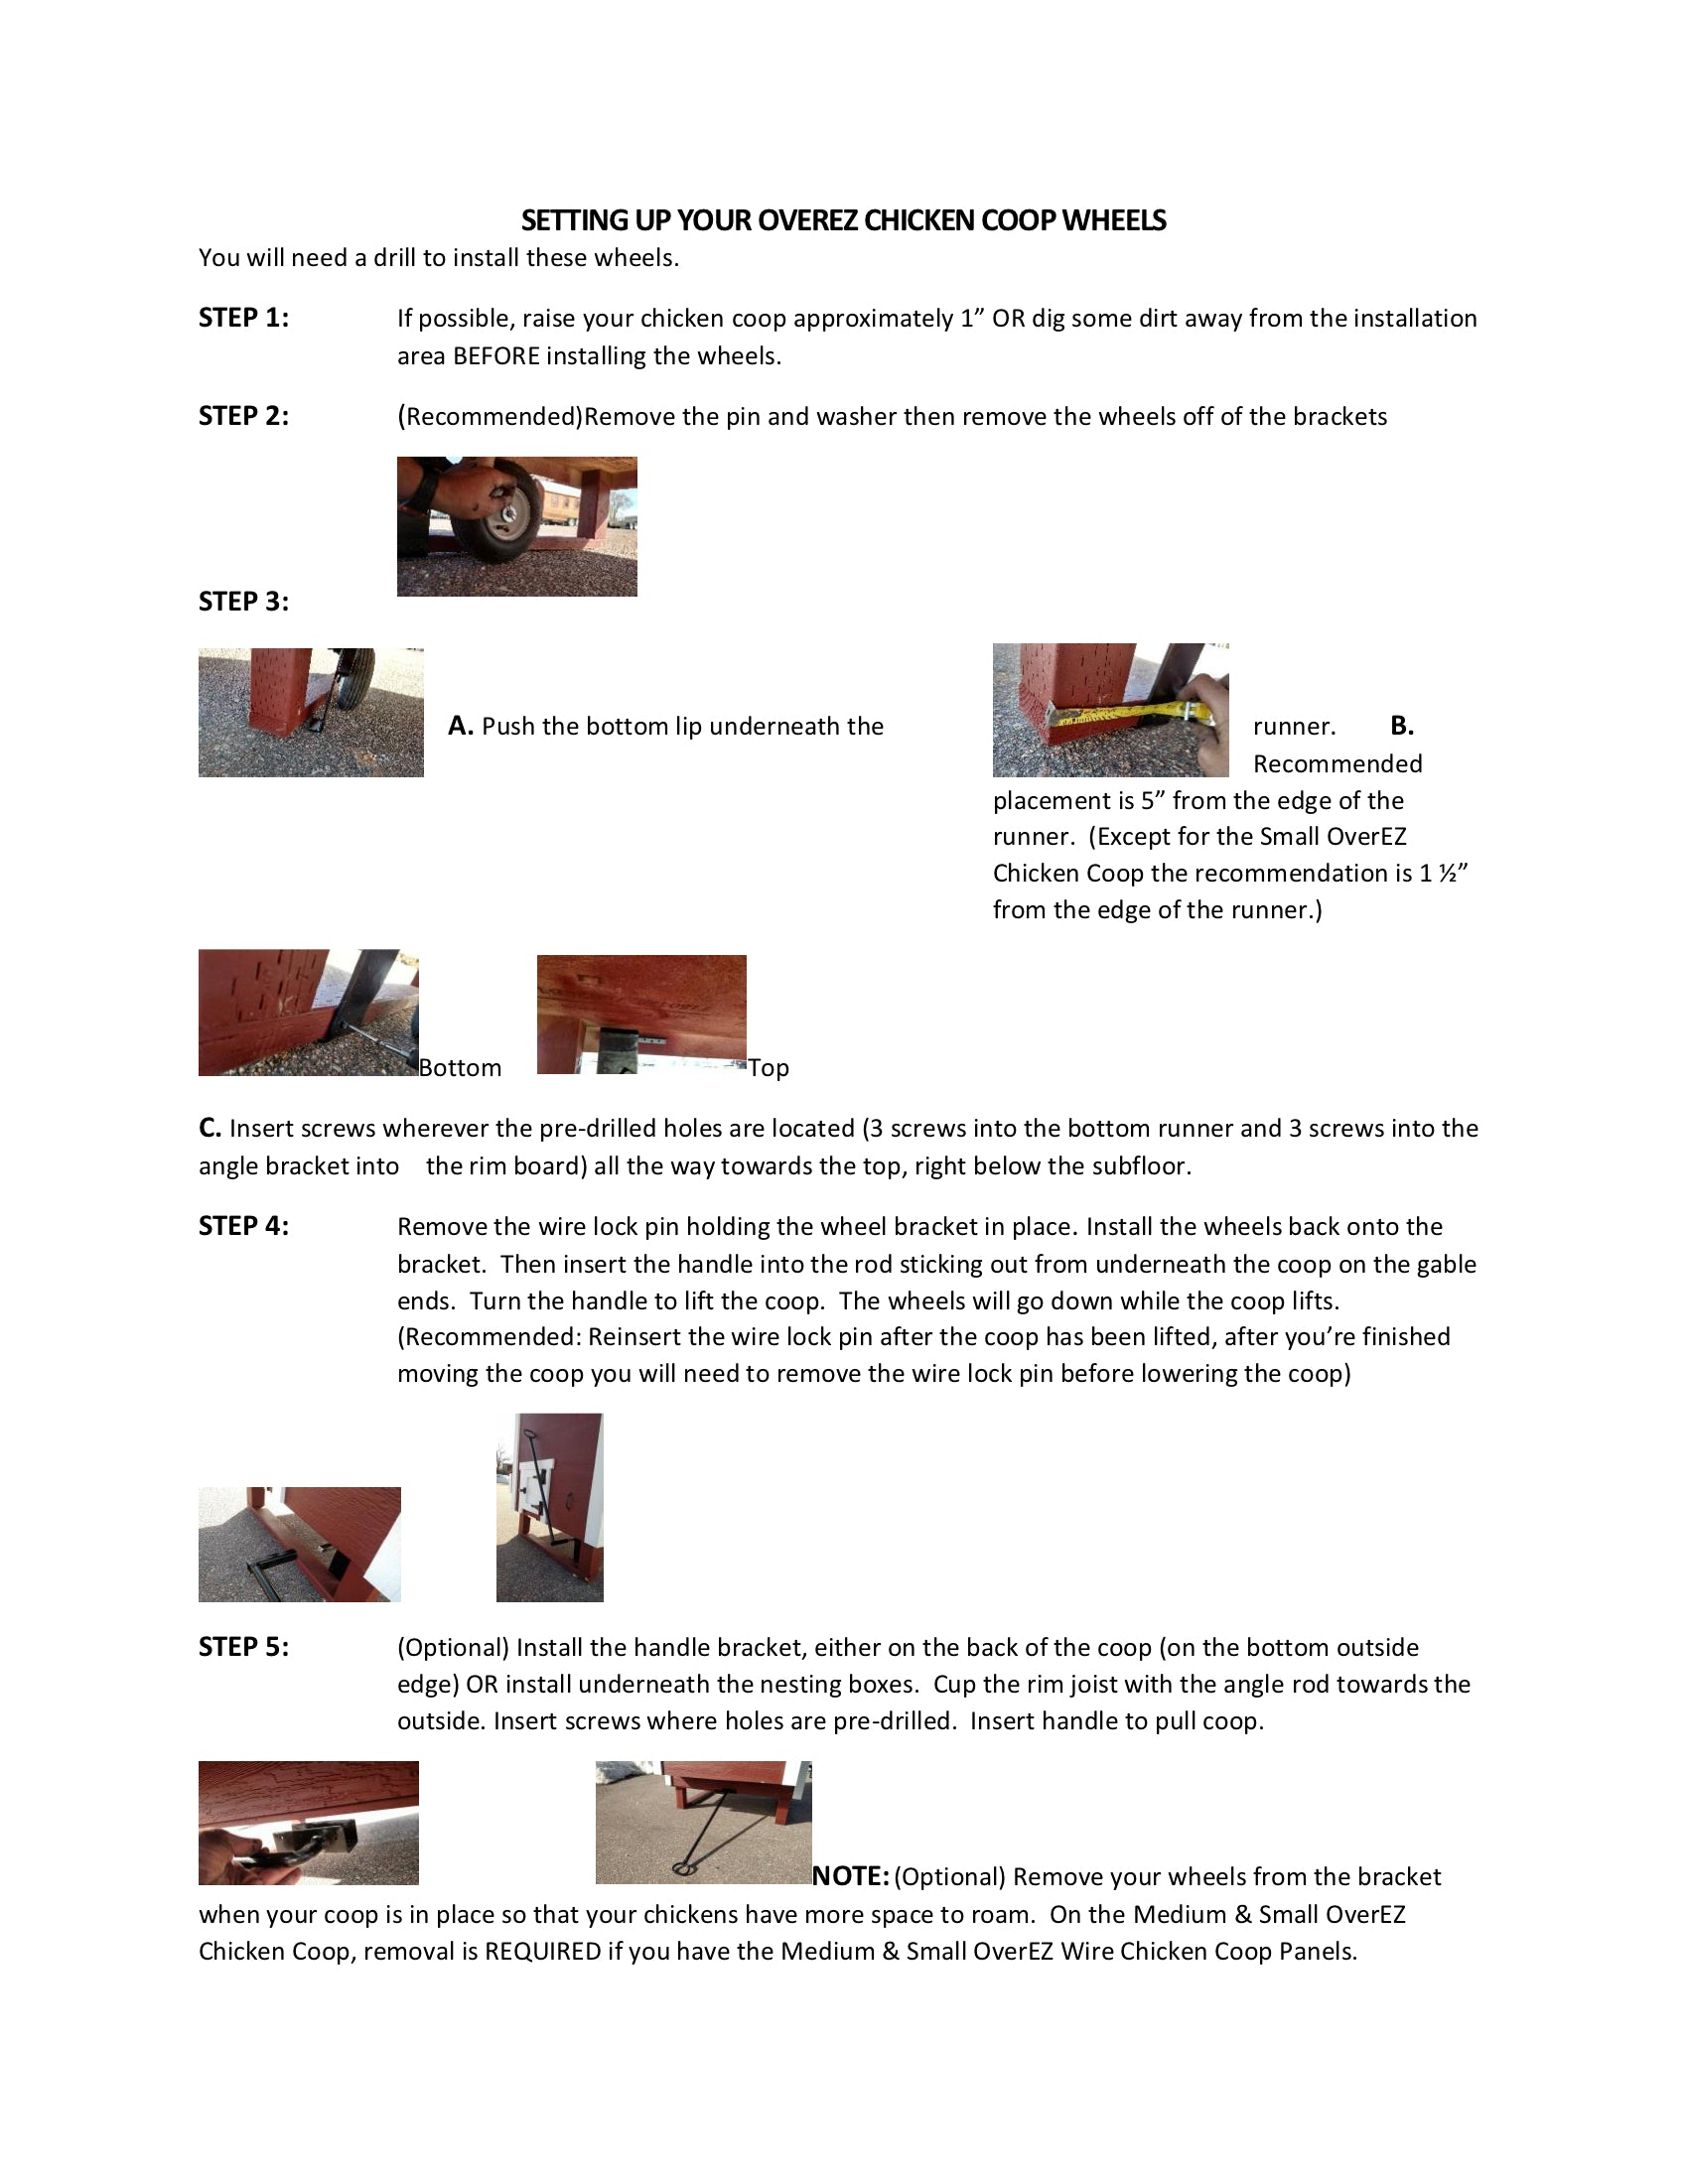 OverEZ Chicken Coop Wheels Instructions 2